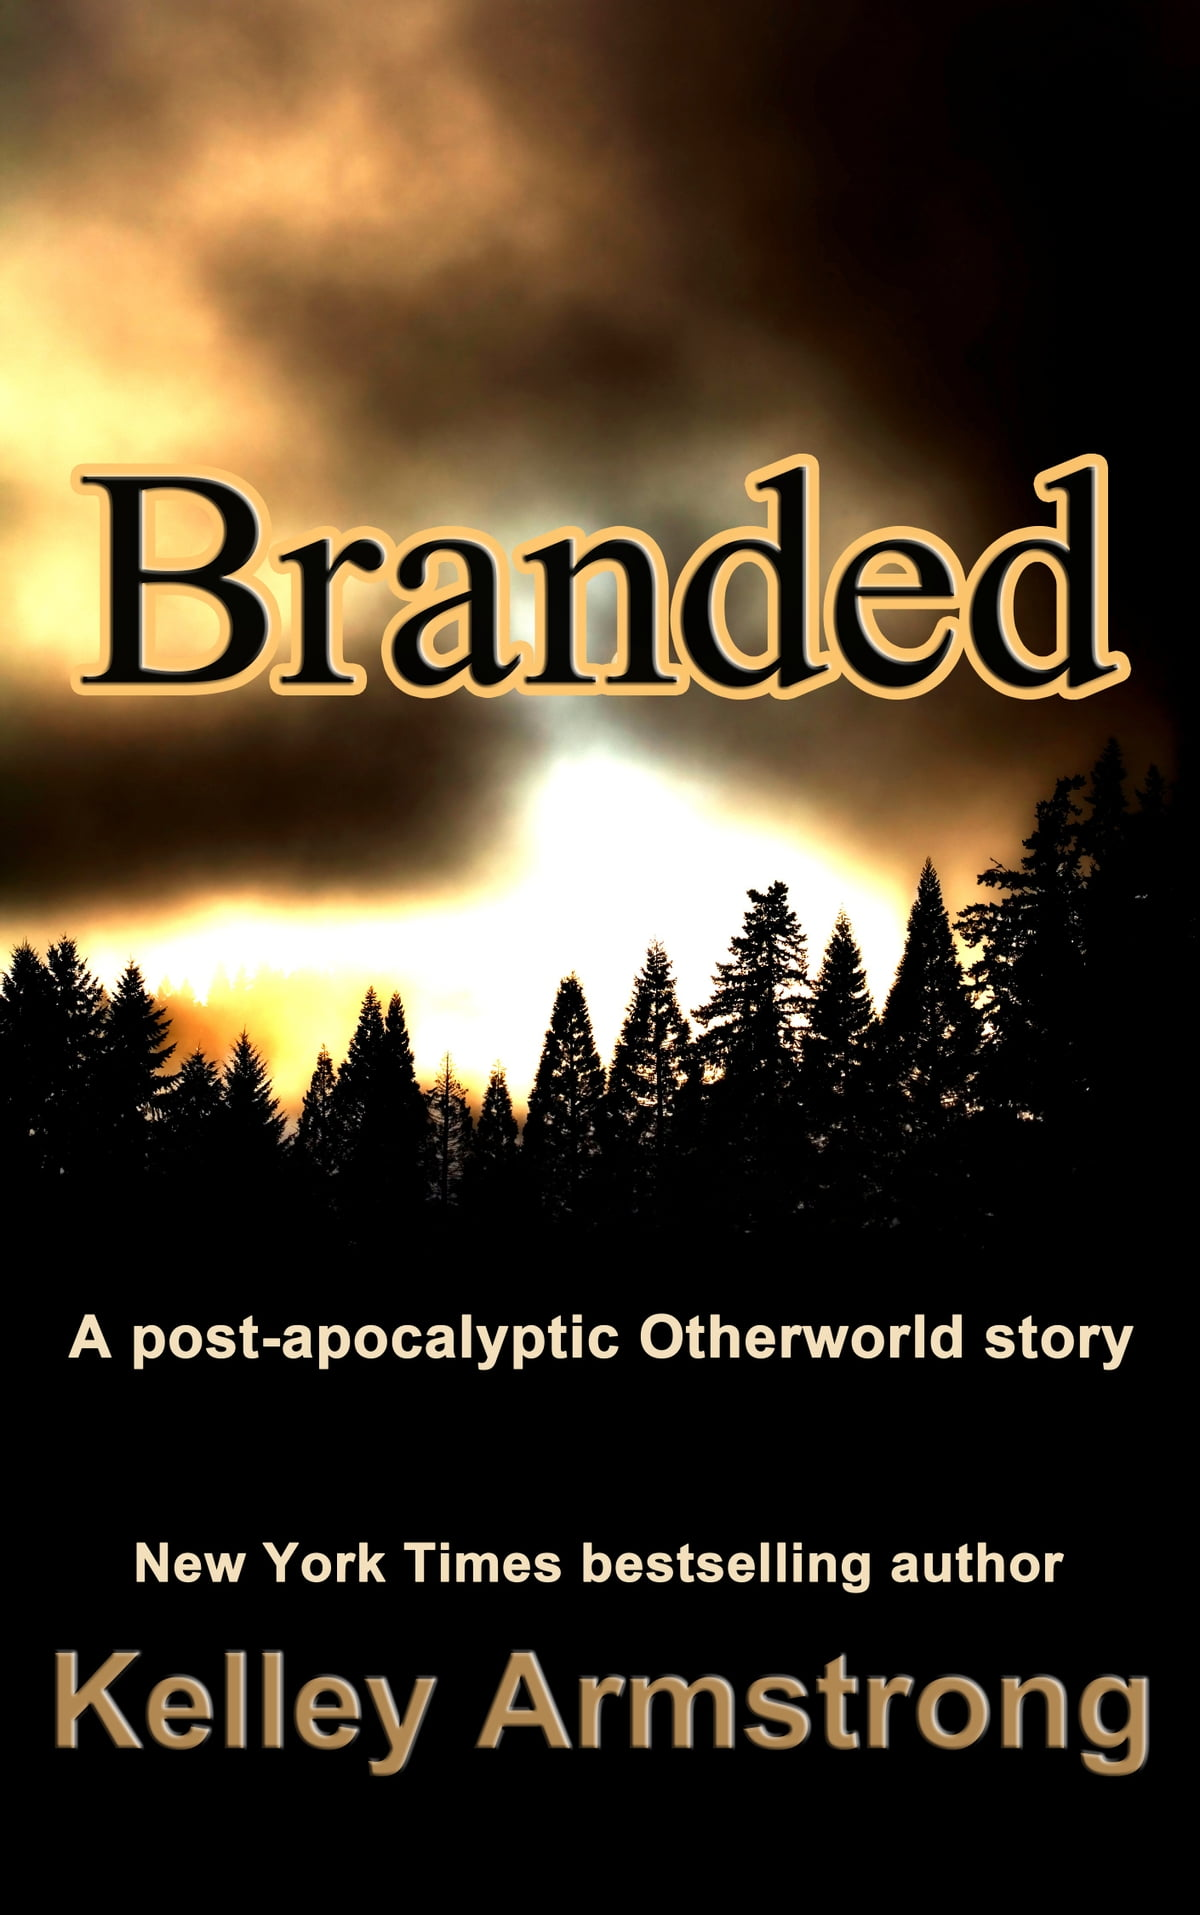 Branded  A Postapocalyptic Otherworld Story Ebook By Kelley Armstrong